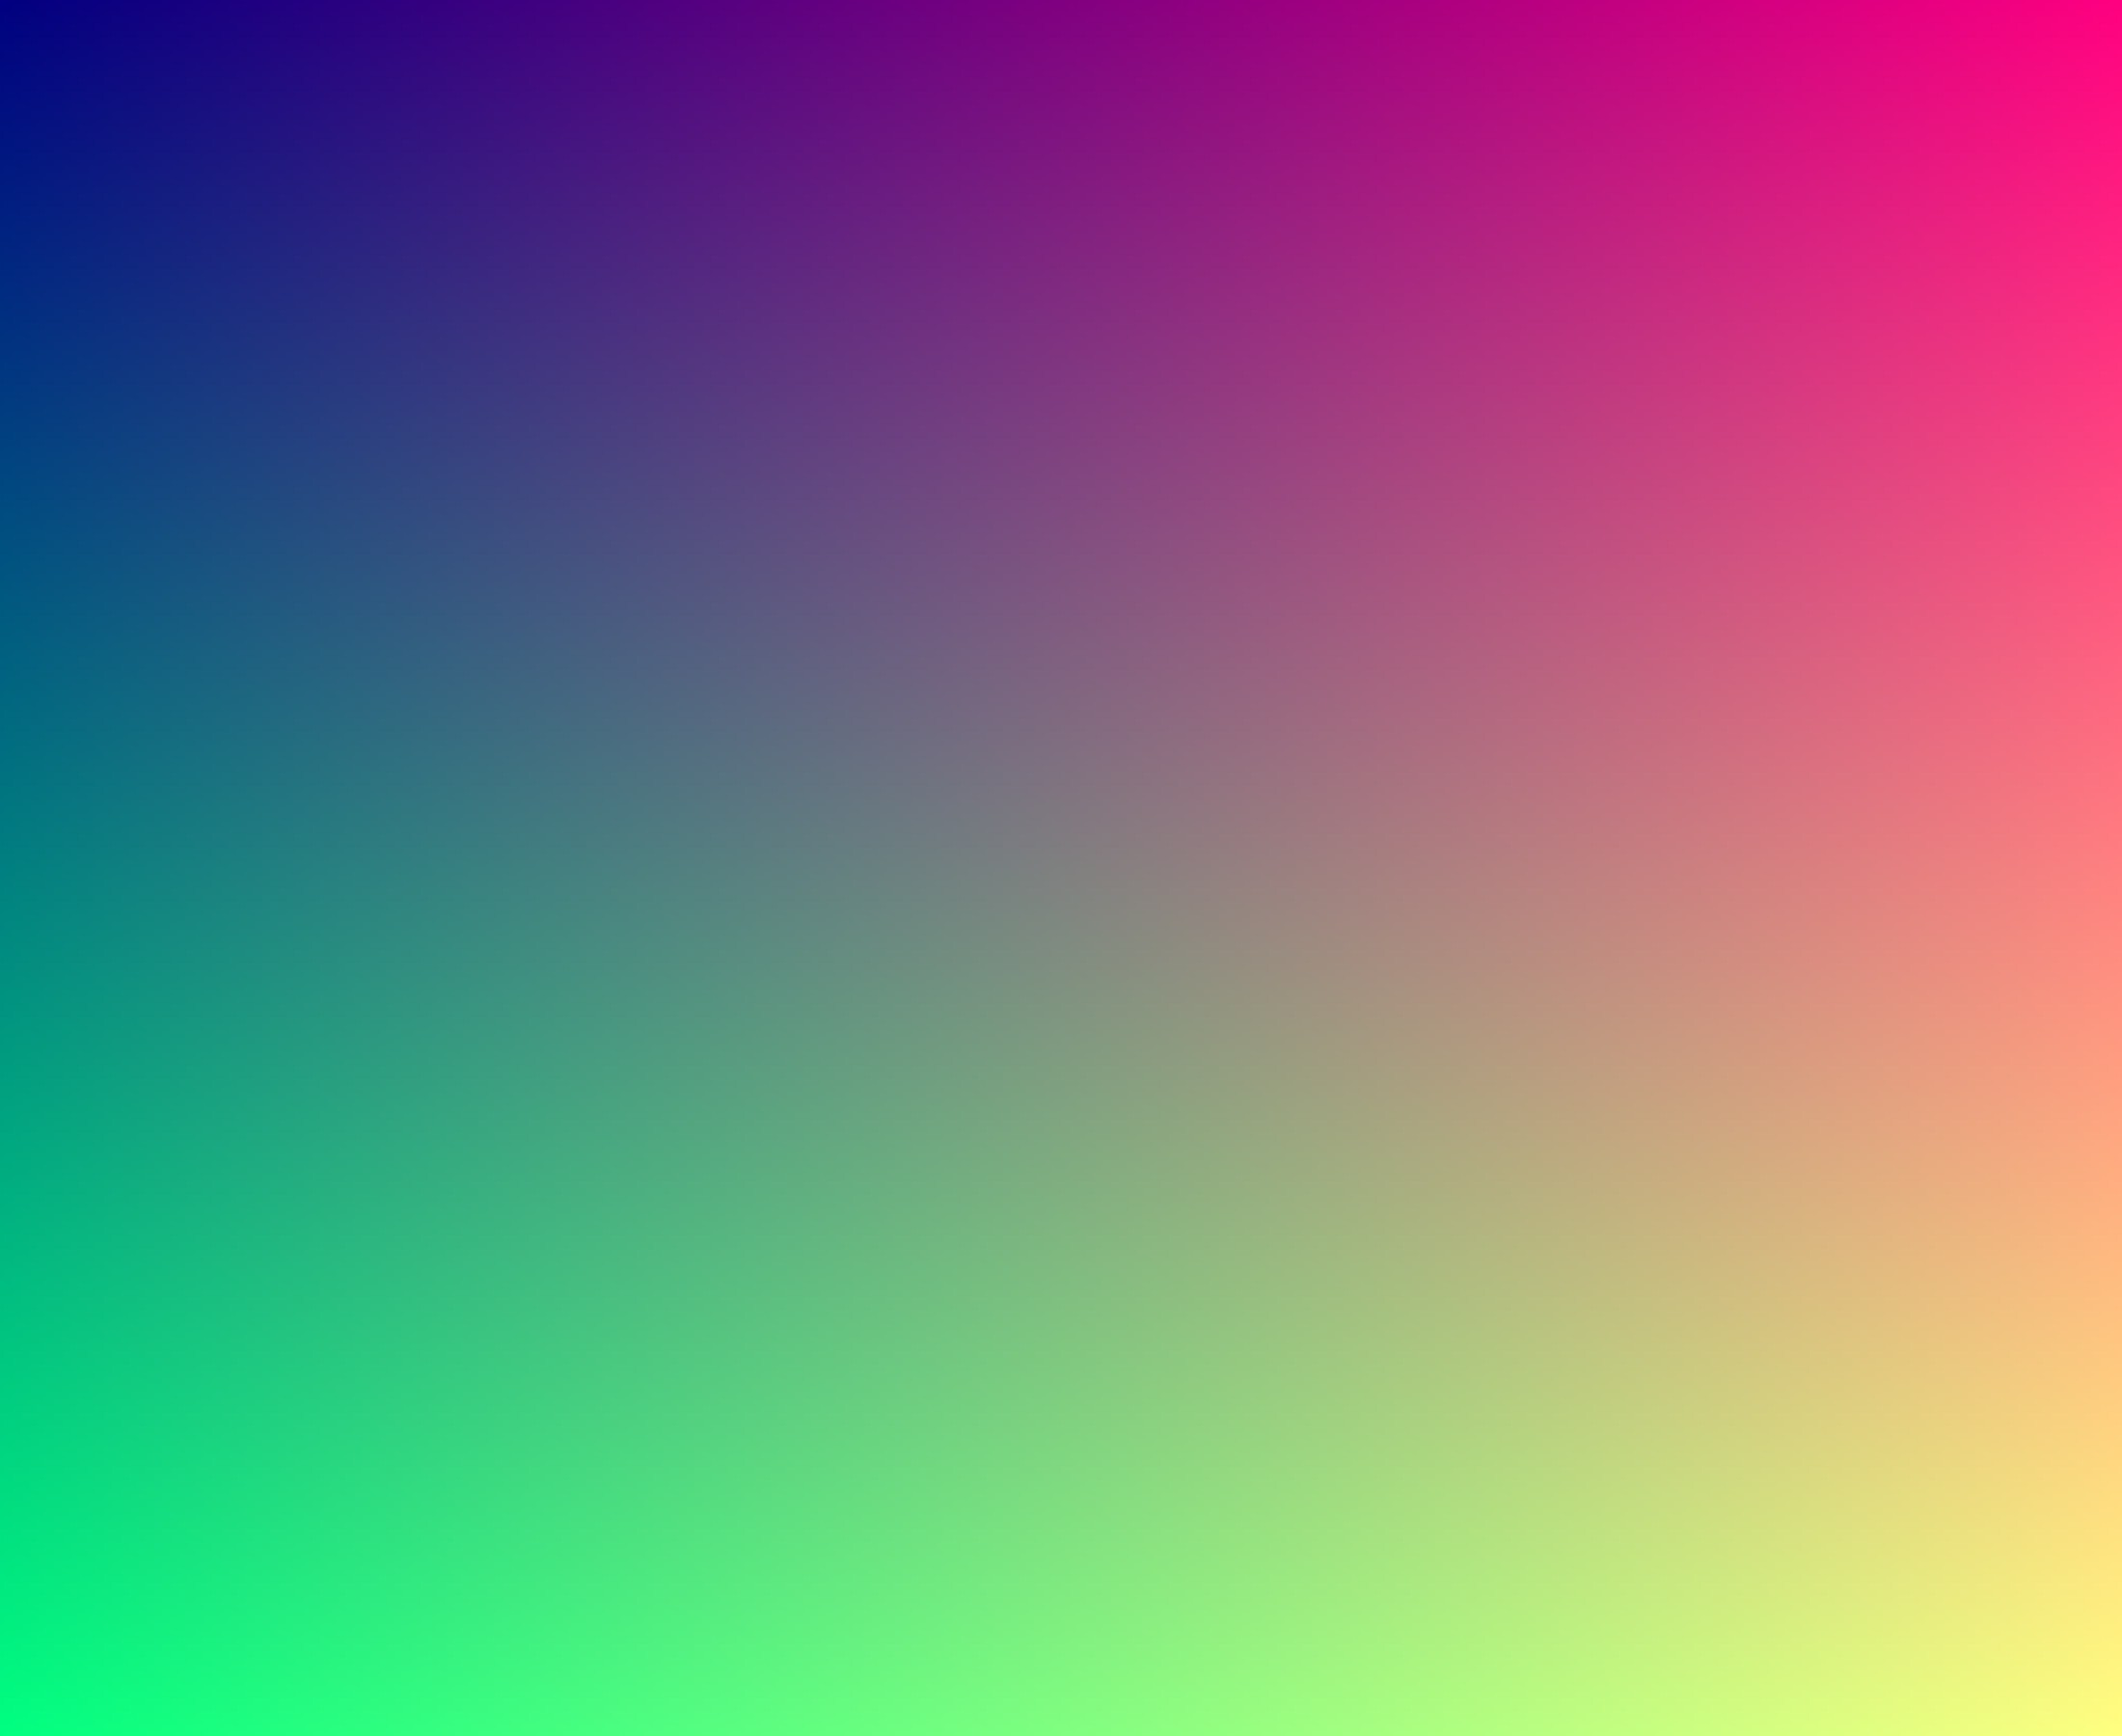 light sky sunlight texture atmosphere pattern line green color colorful  circle font background gradient course shape